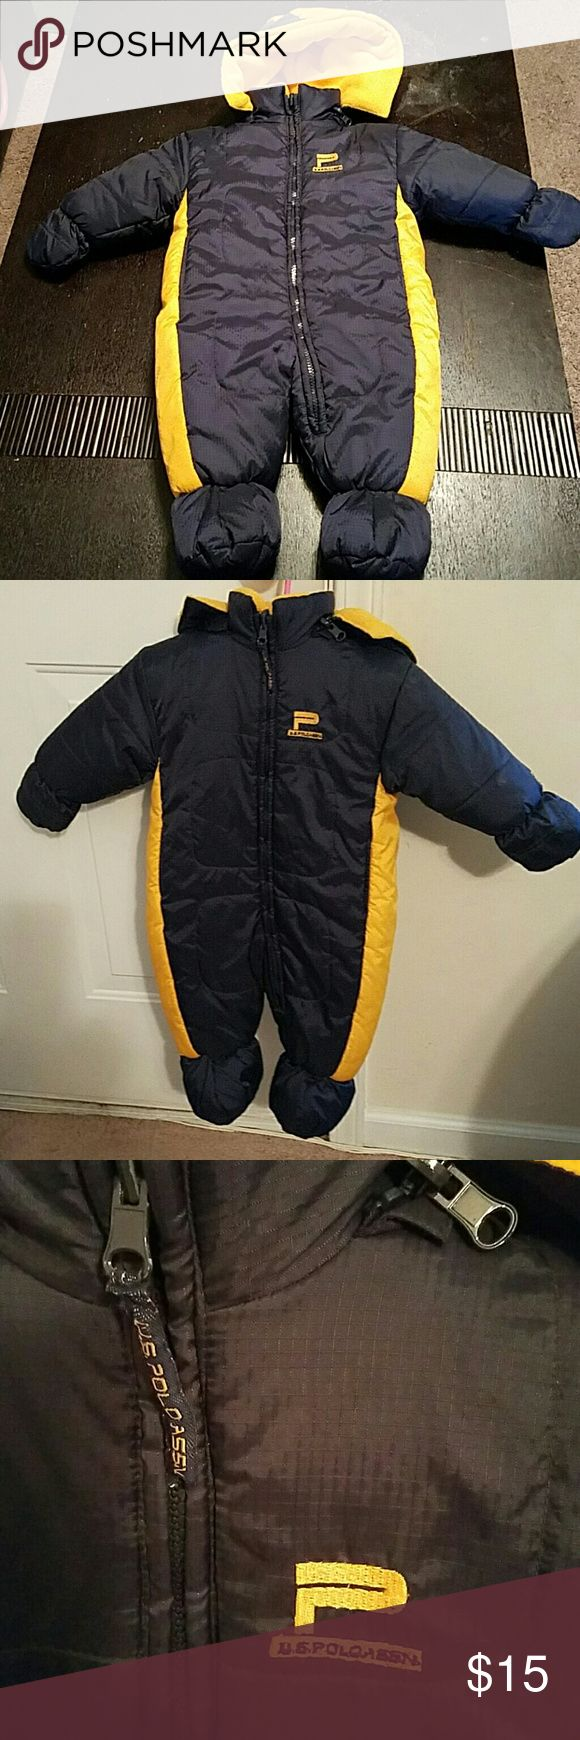 Baby Winter Snow Suit U.S. Polo Association reversible Snow Suit with detachable hood.  Navy blue and yellow. Worn once; in great condition. The sizing tag is missing but it is 21 inches in length and 13 in.  across. U.S. Polo Assn. Jackets & Coats Puffers